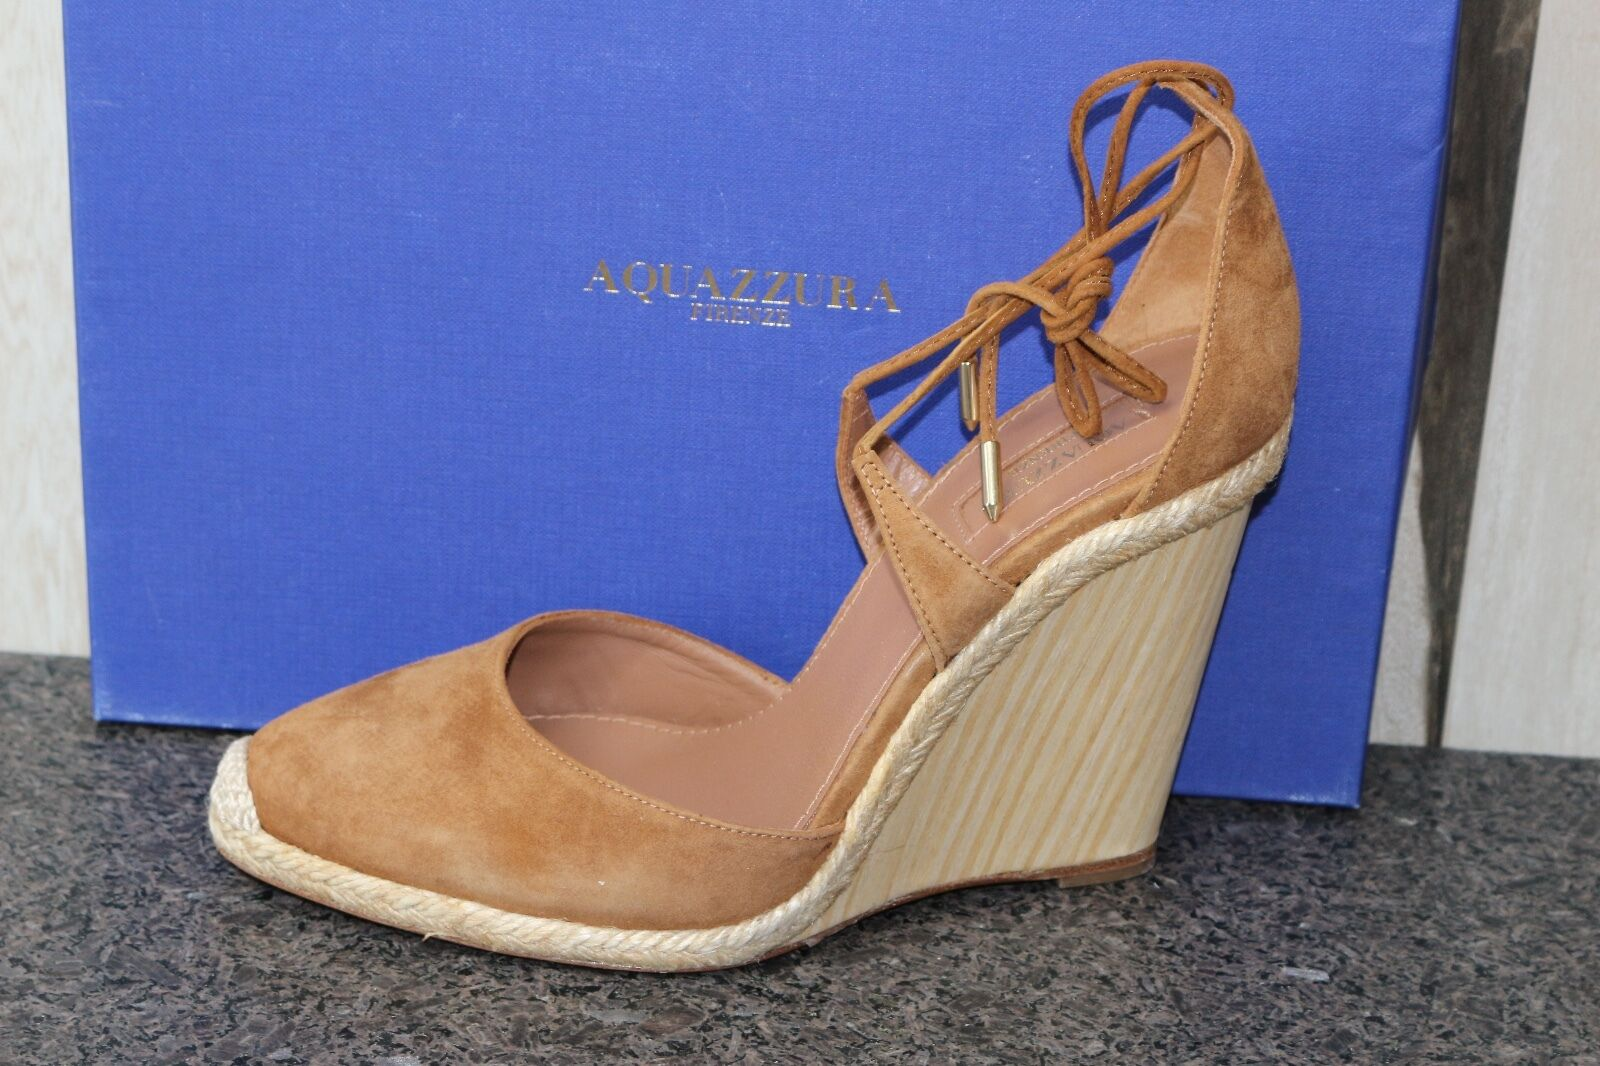 NIB Authentic AQUAZZURA KARLIE SUEDE ESPADRILLES WOOD WEDGE Sandals shoes 39.5